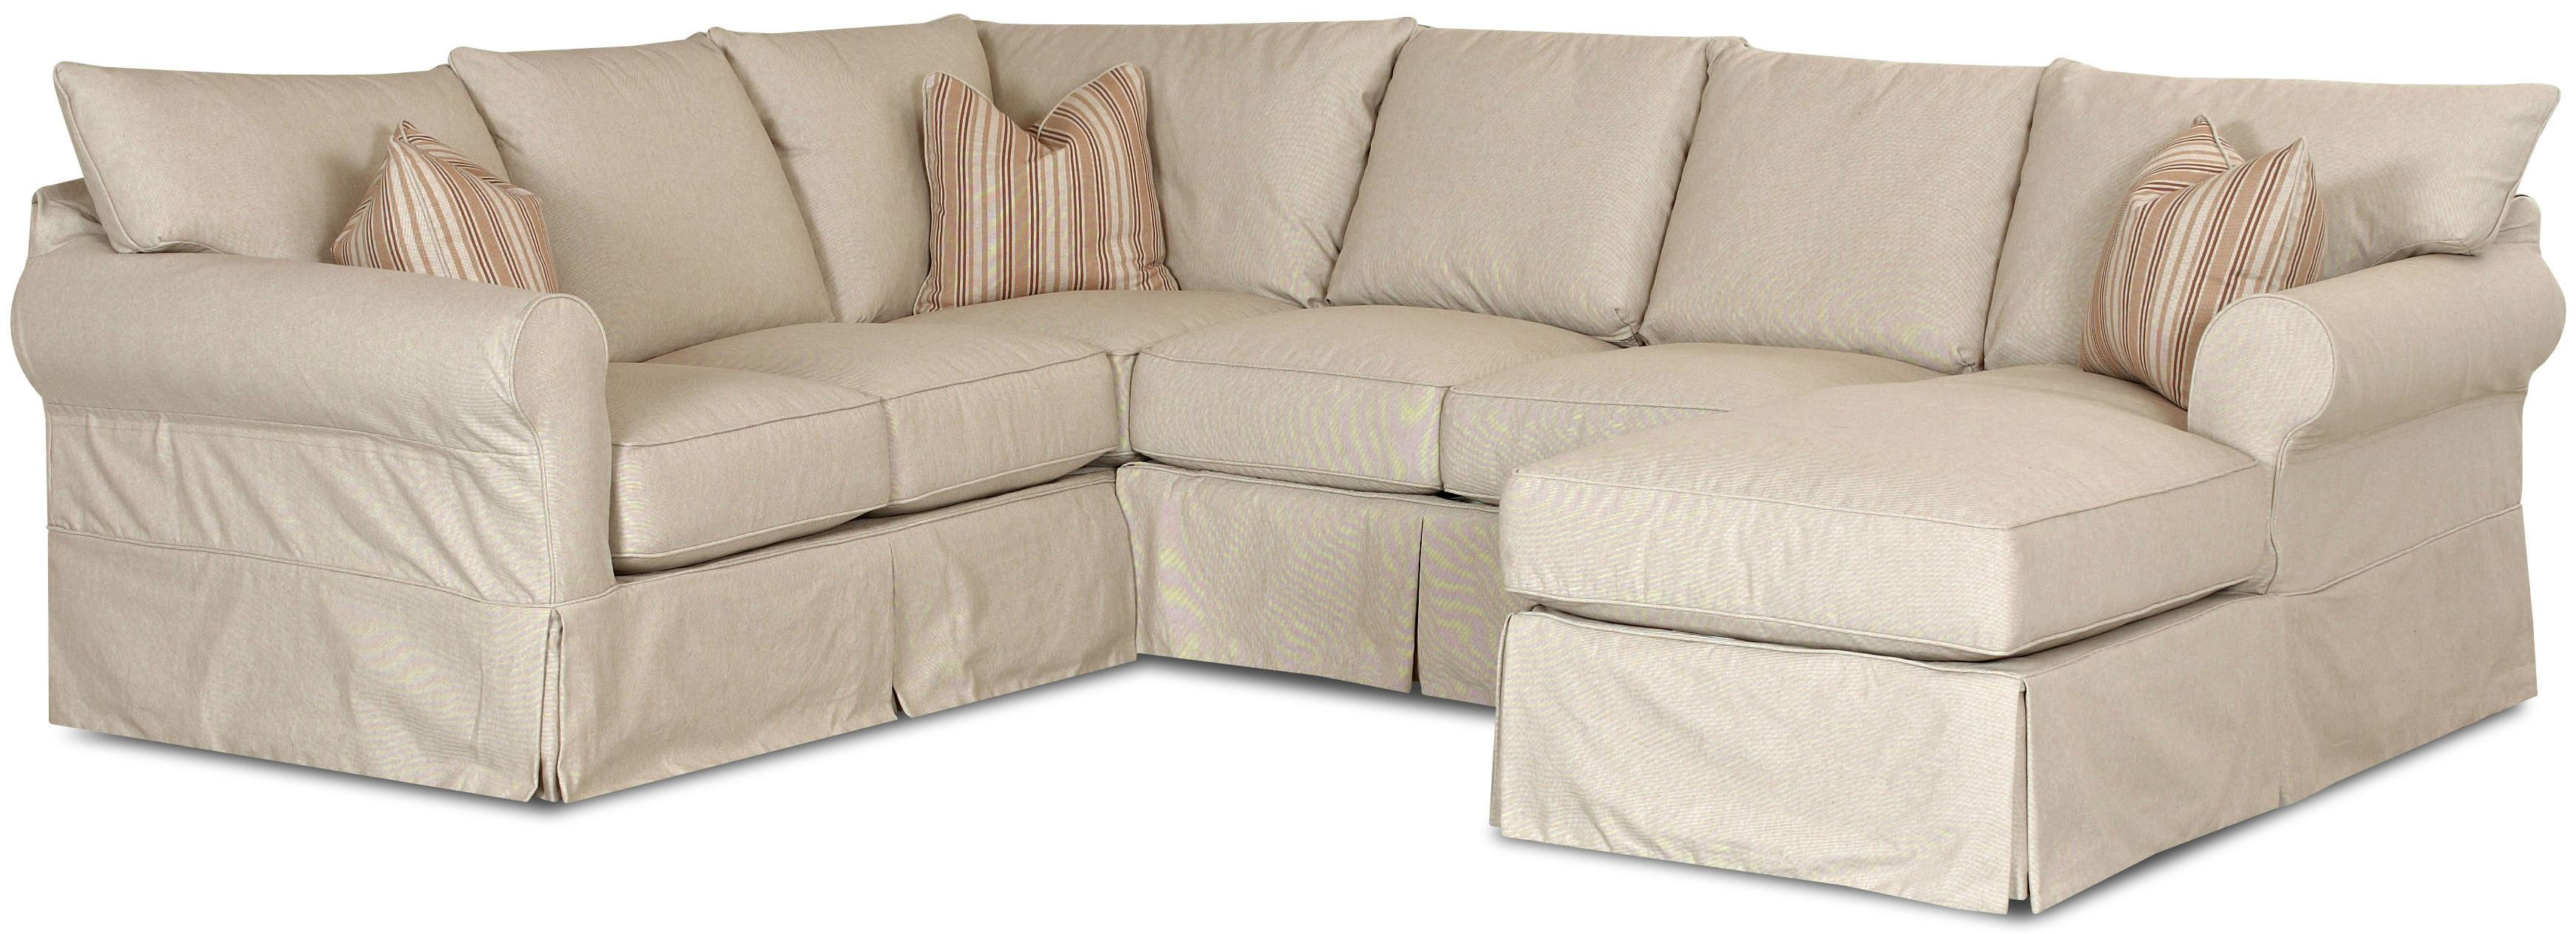 Klaussner Jenny Slip Cover Sectional Sofa With Right Chaise H L Stephens Sectional Sofas